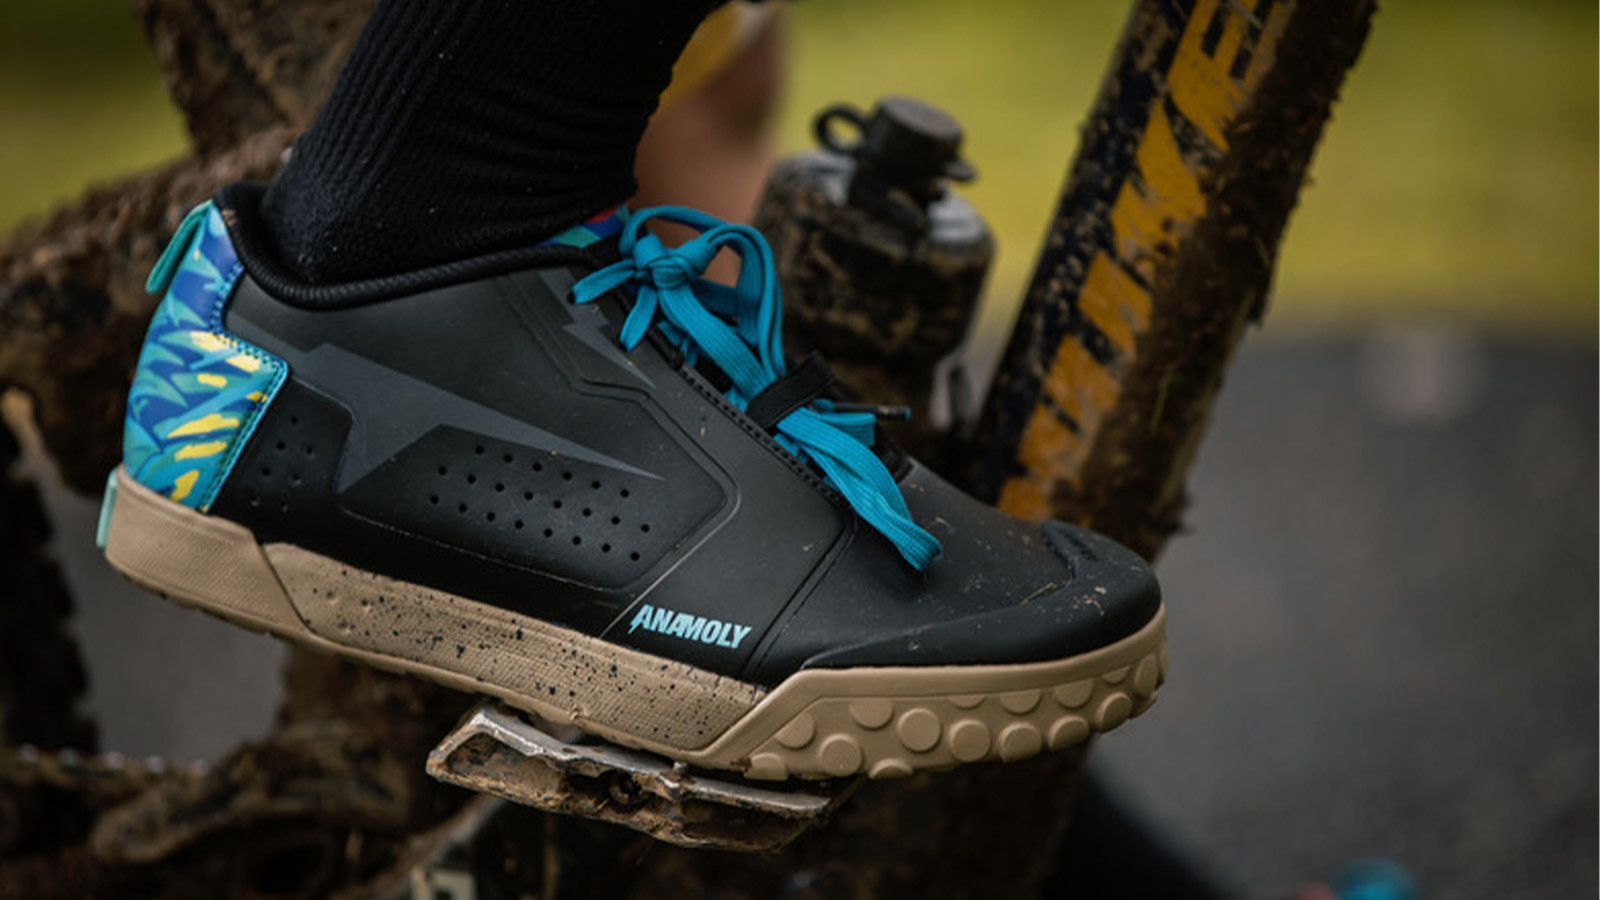 Anamoly MTB Sends it Into Kickstarter With Their All New Flat Pedal Shoe Launch